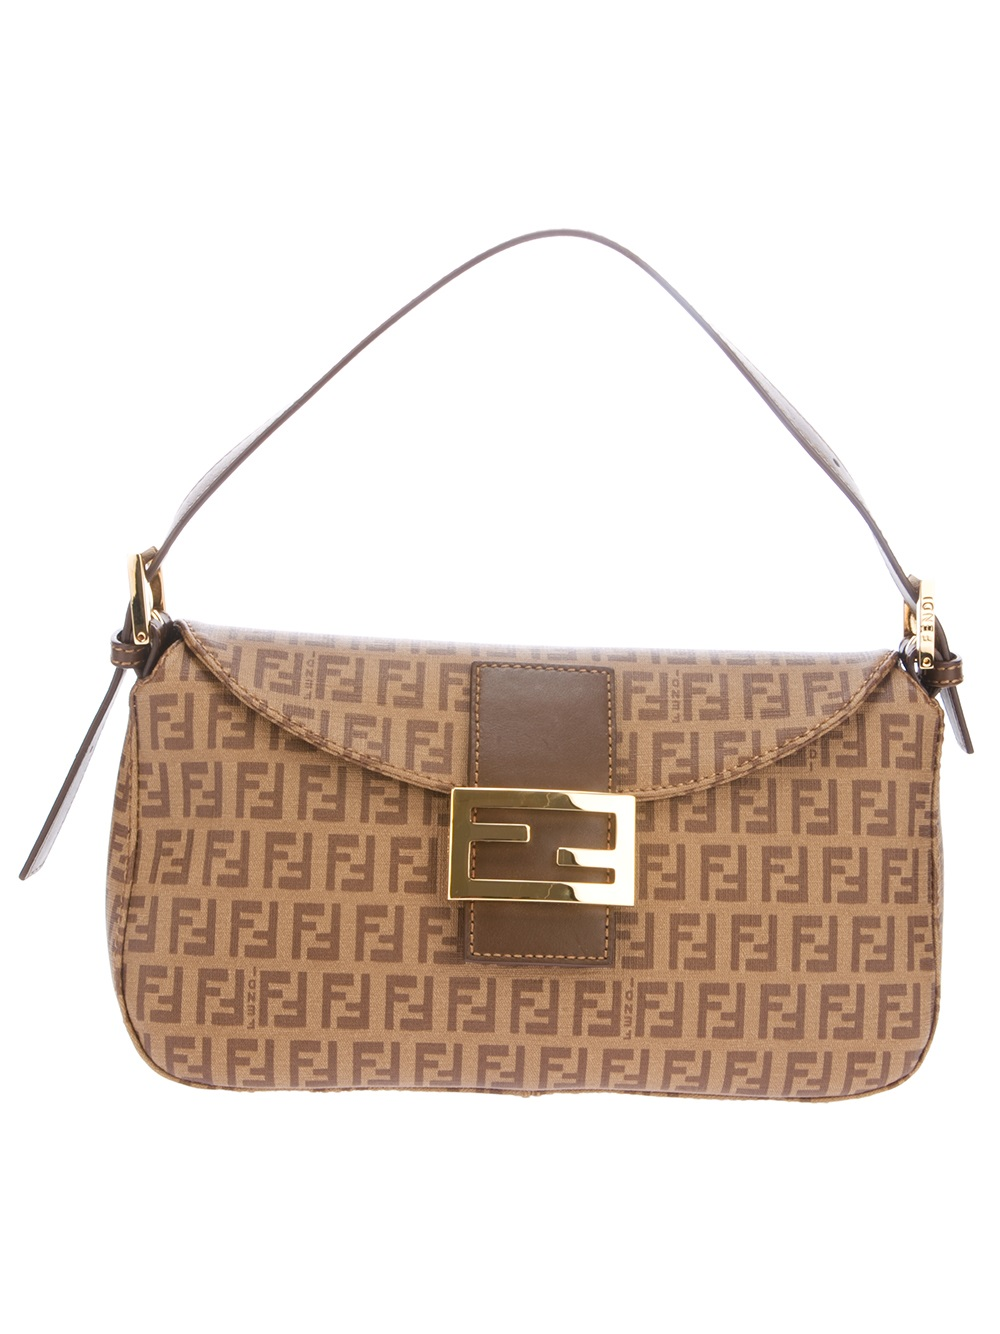 2ae41becbd3f Gallery. Previously sold at  Farfetch · Women s Fendi Baguette ...